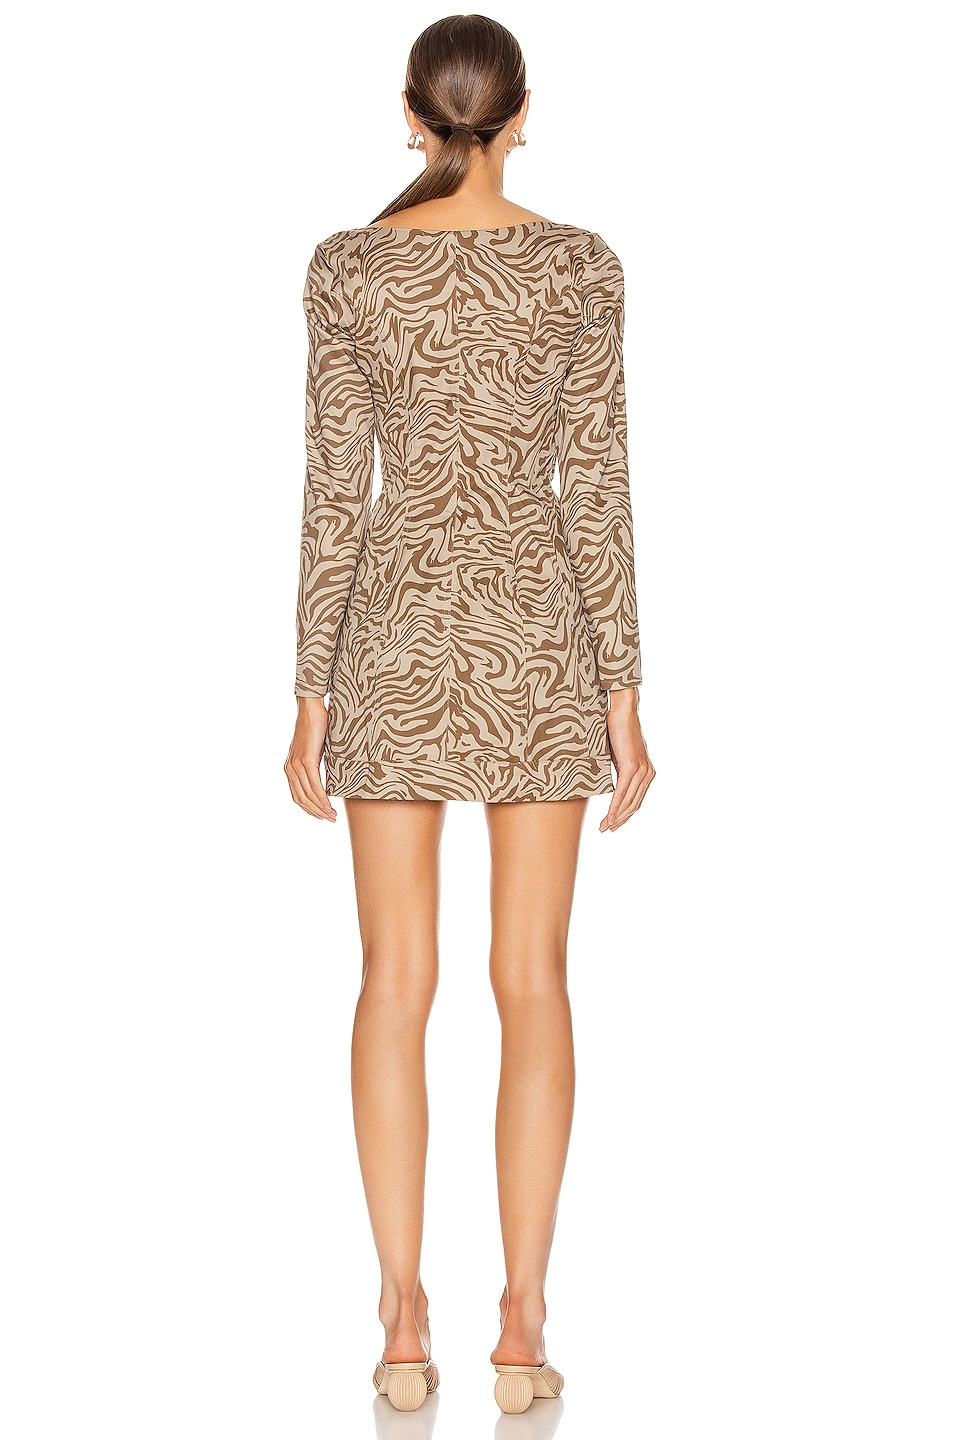 Image 3 of Miaou Dree Dress in Tan Zebra